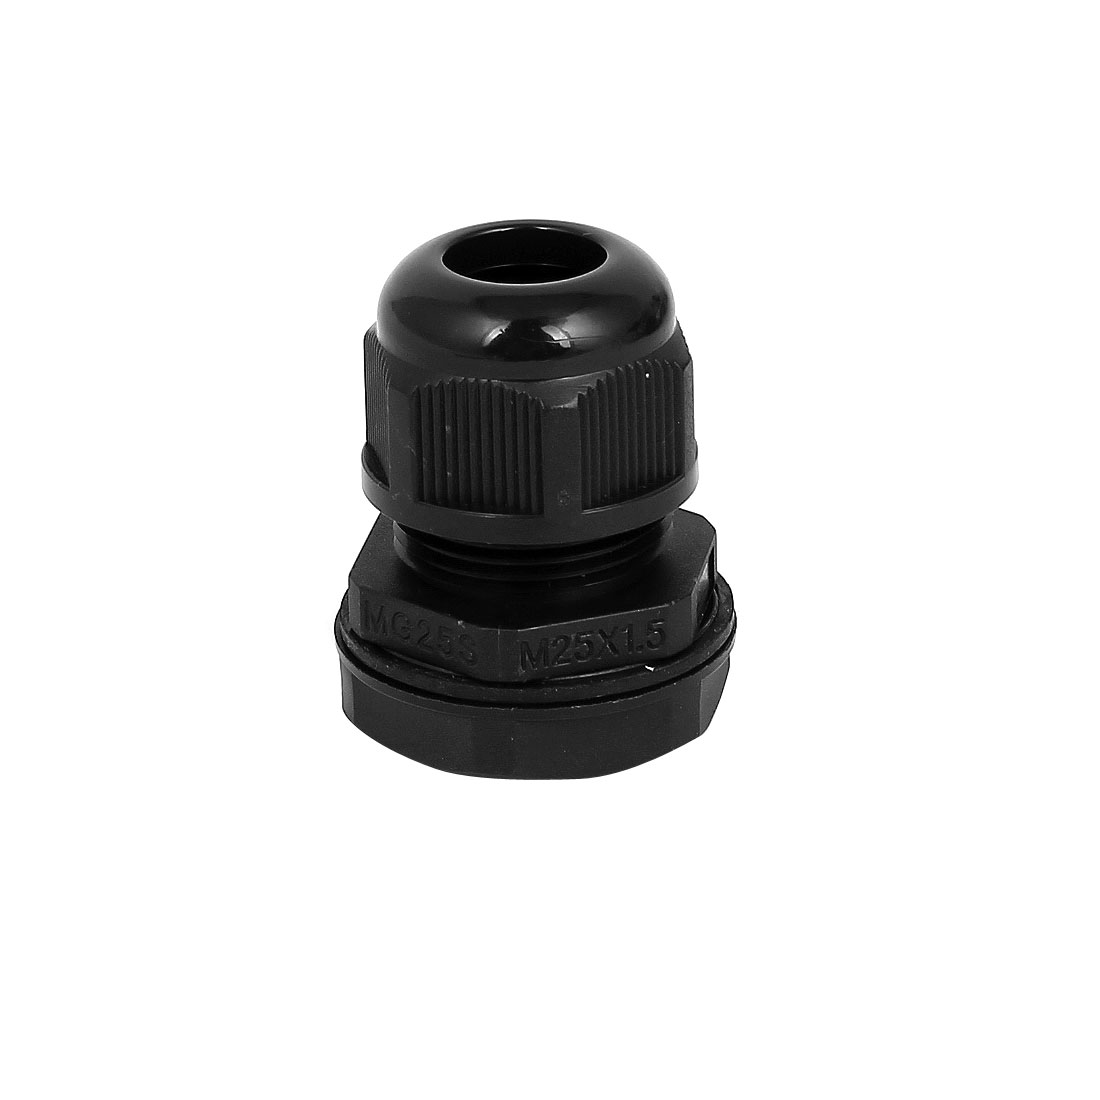 Black Plastic Waterproof Cable Fixing Connect Locknut Wire Glands Connector Joints M25x1.5